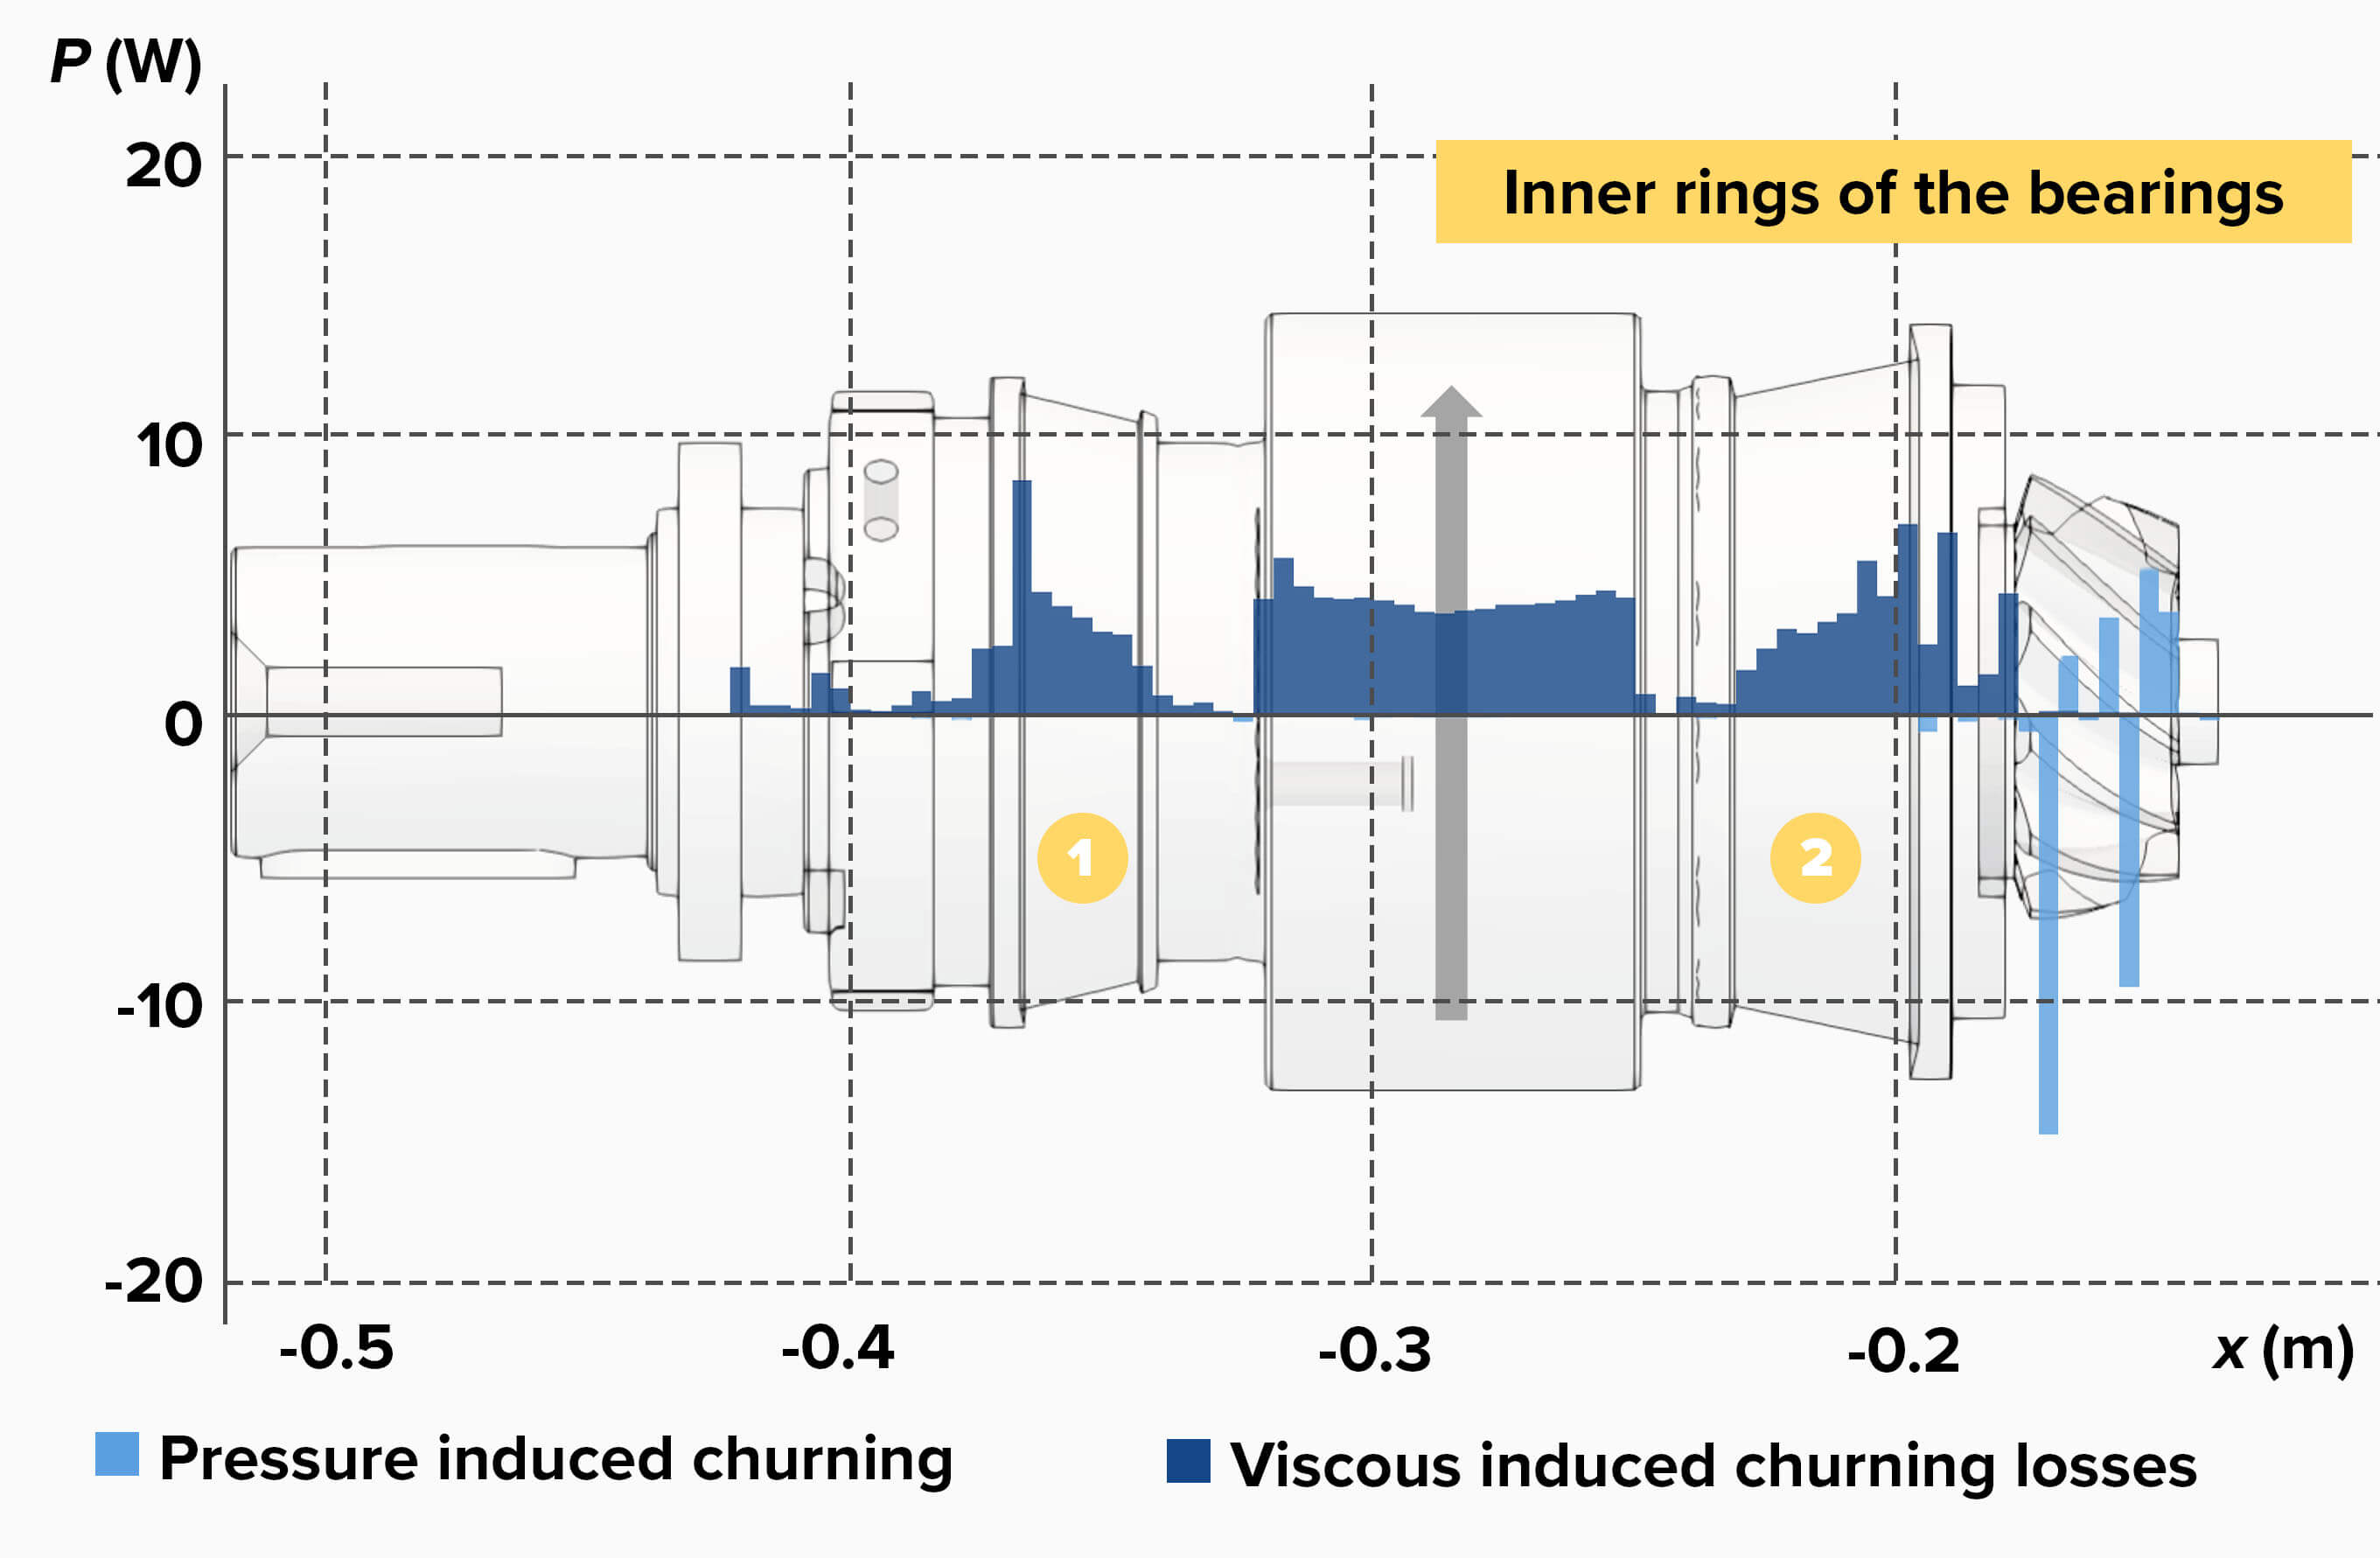 Churning loss distribution along the axial direction of the pinion and its shaft